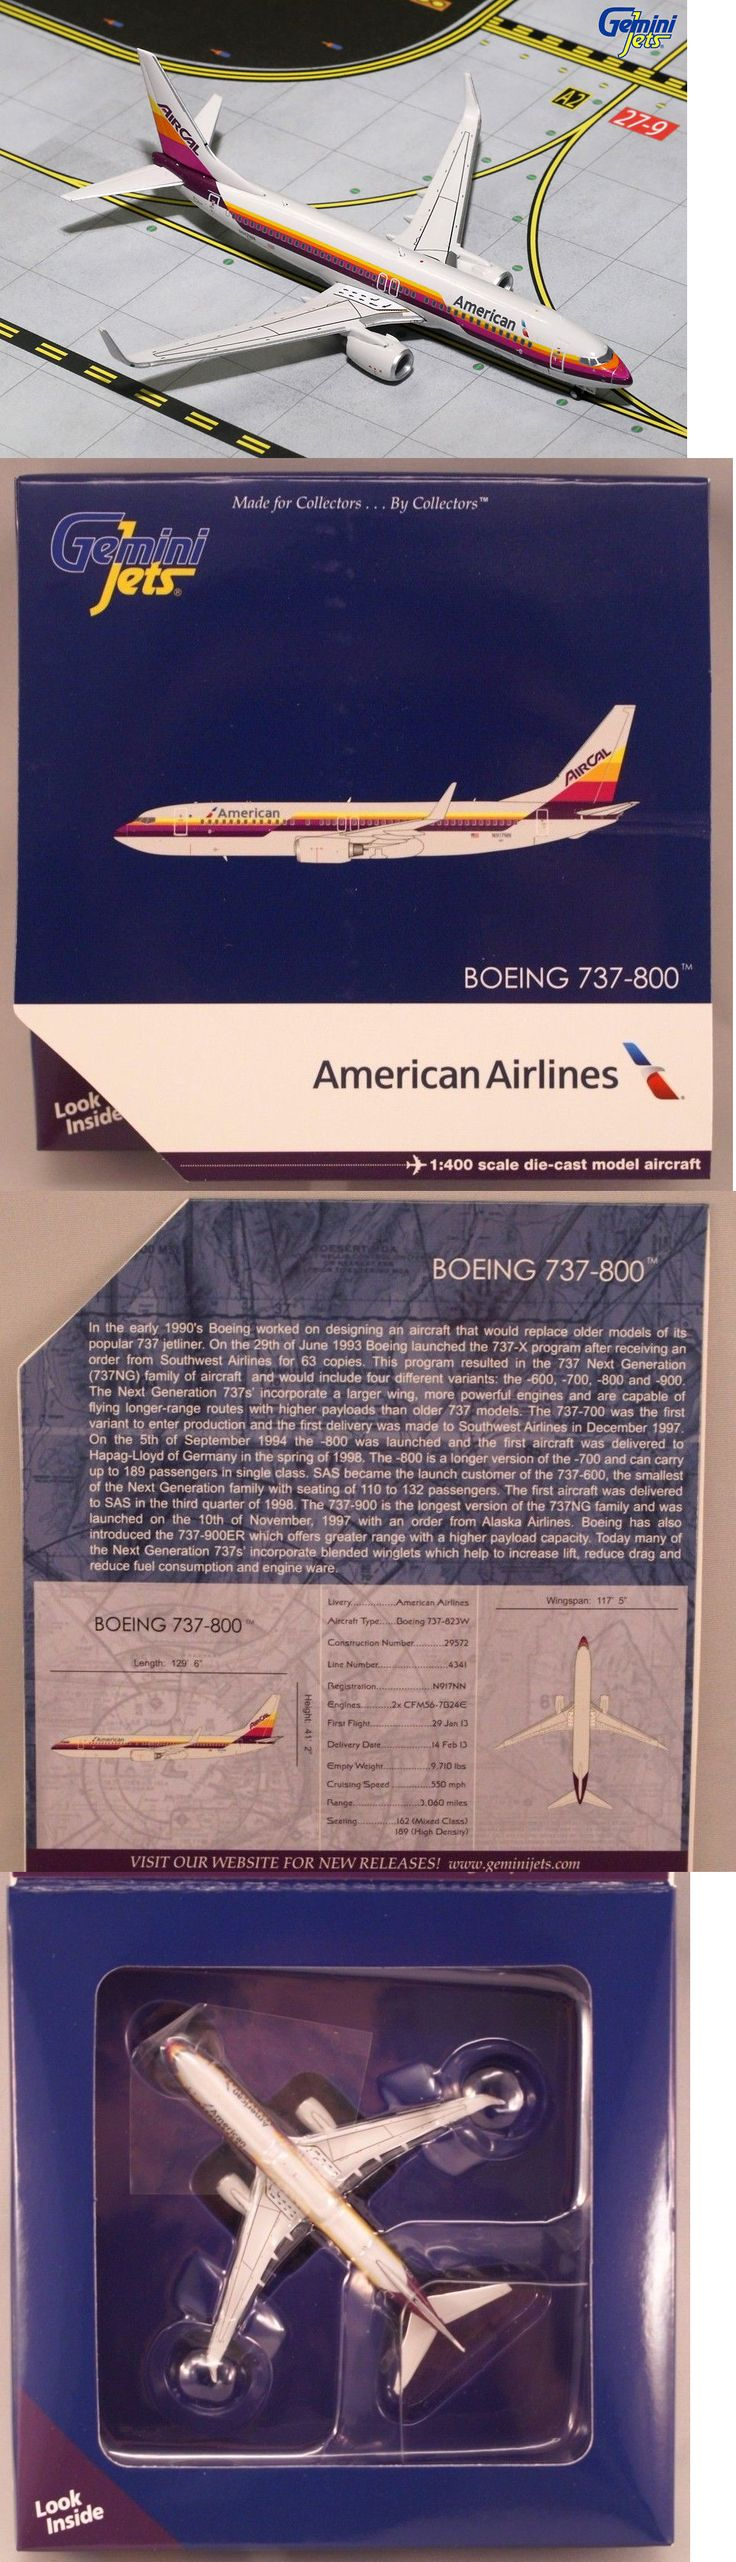 Contemporary Manufacture 19029: Gemini Jets American Airlines Boeing 737-800 Aircal Retro 1 400 Gjaal1515 -> BUY IT NOW ONLY: $30.99 on eBay!